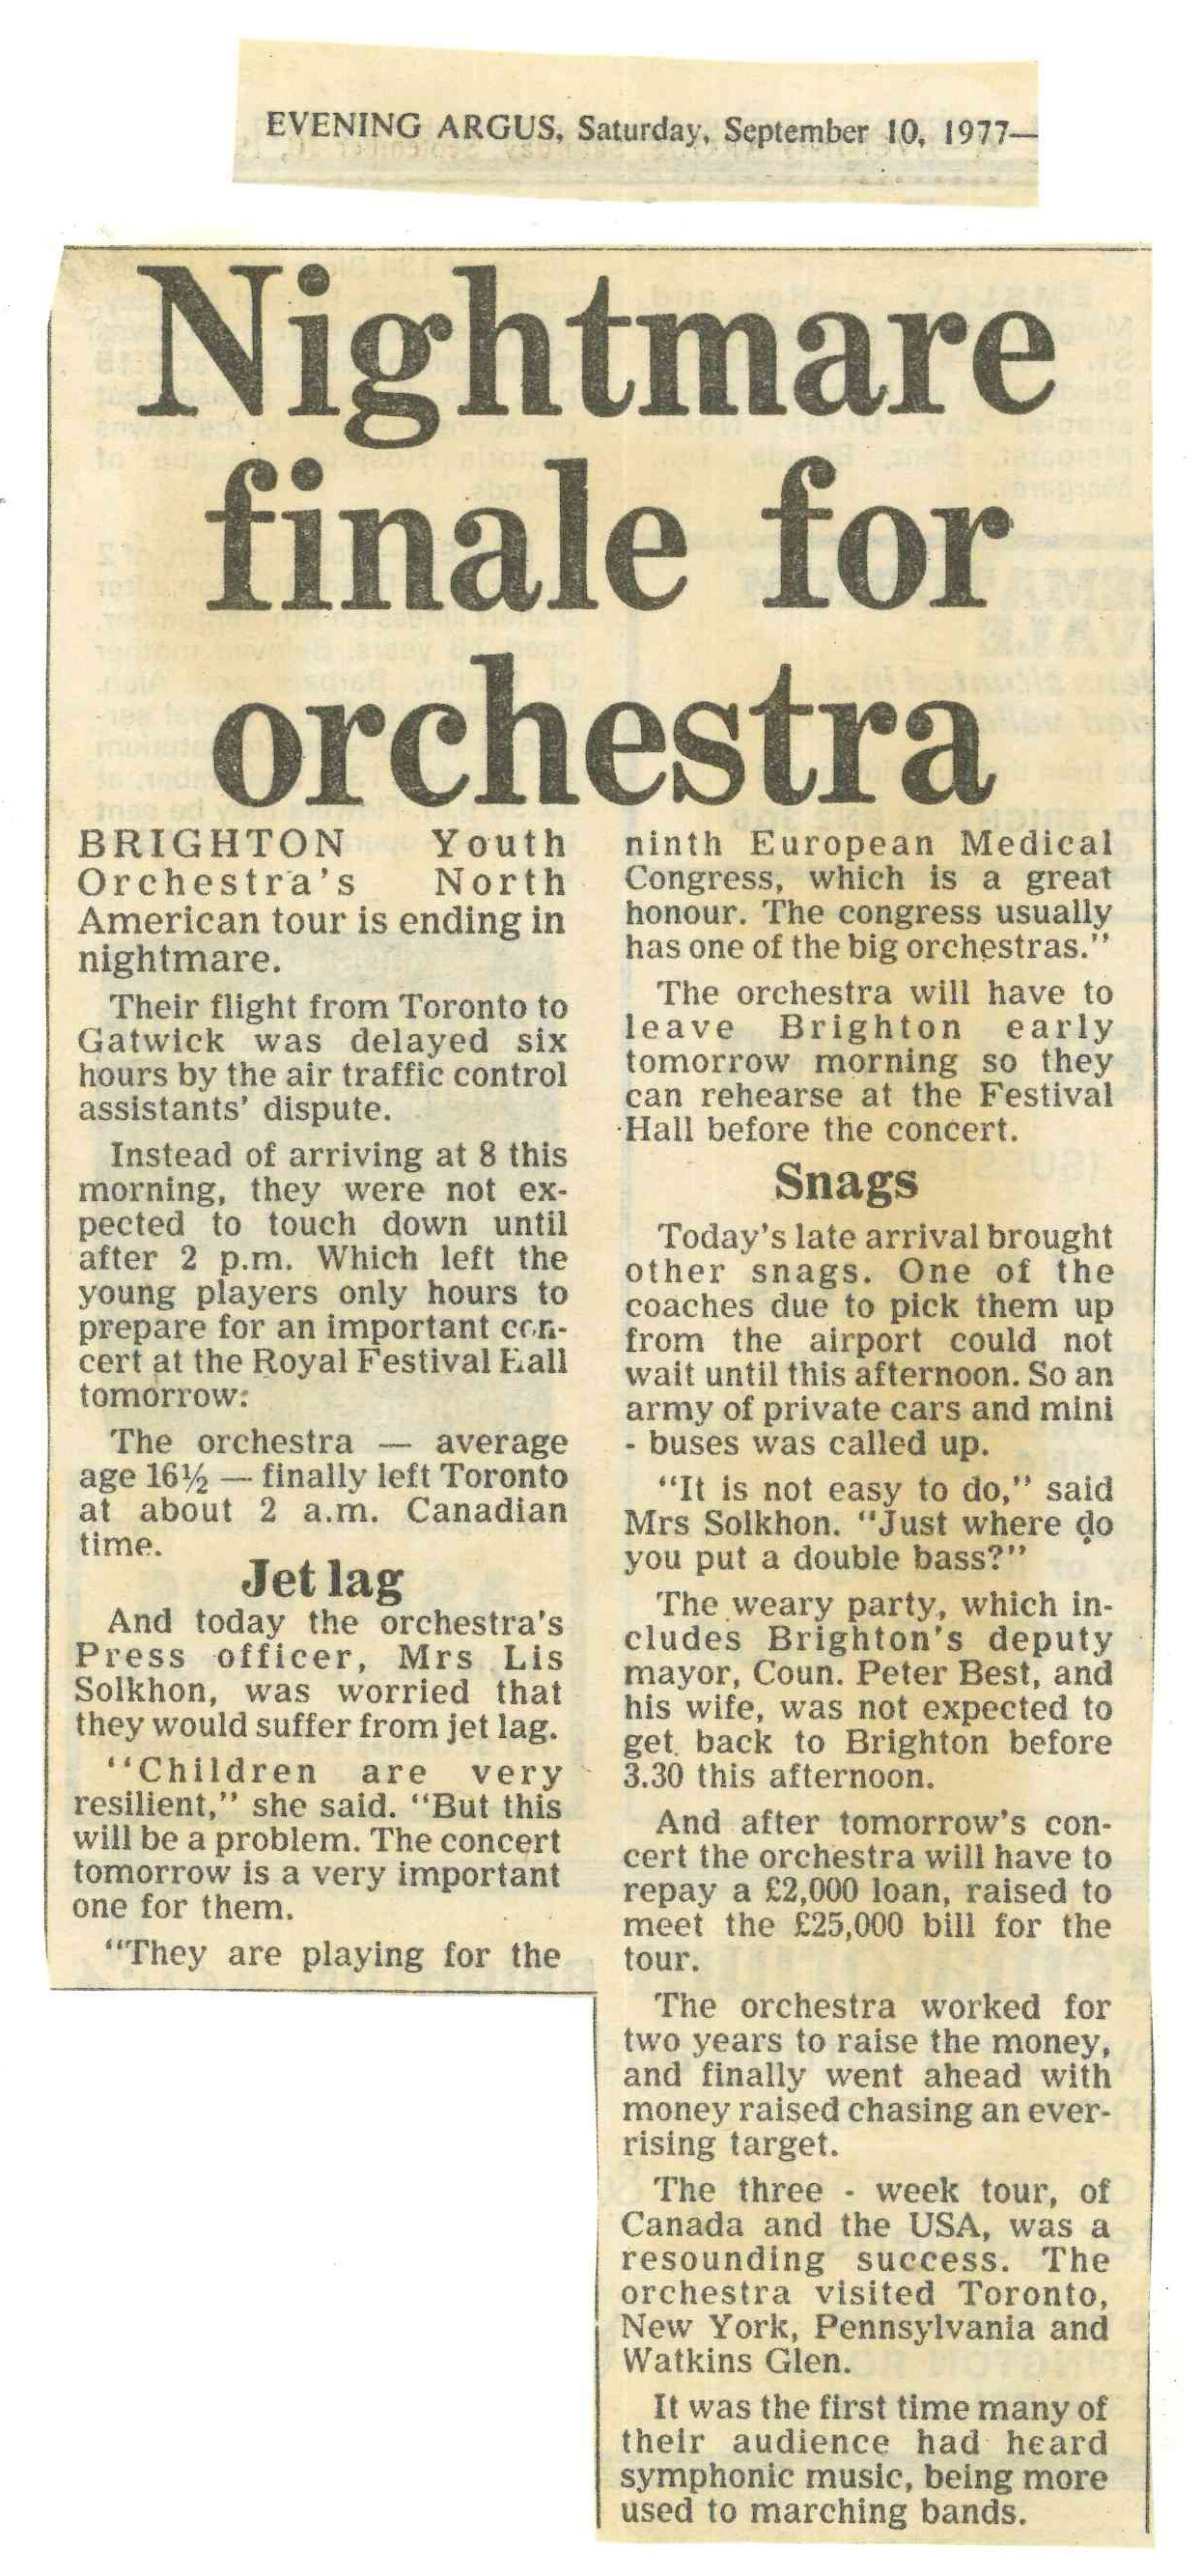 00035-Evening Argus, 10th September 1977.jpg